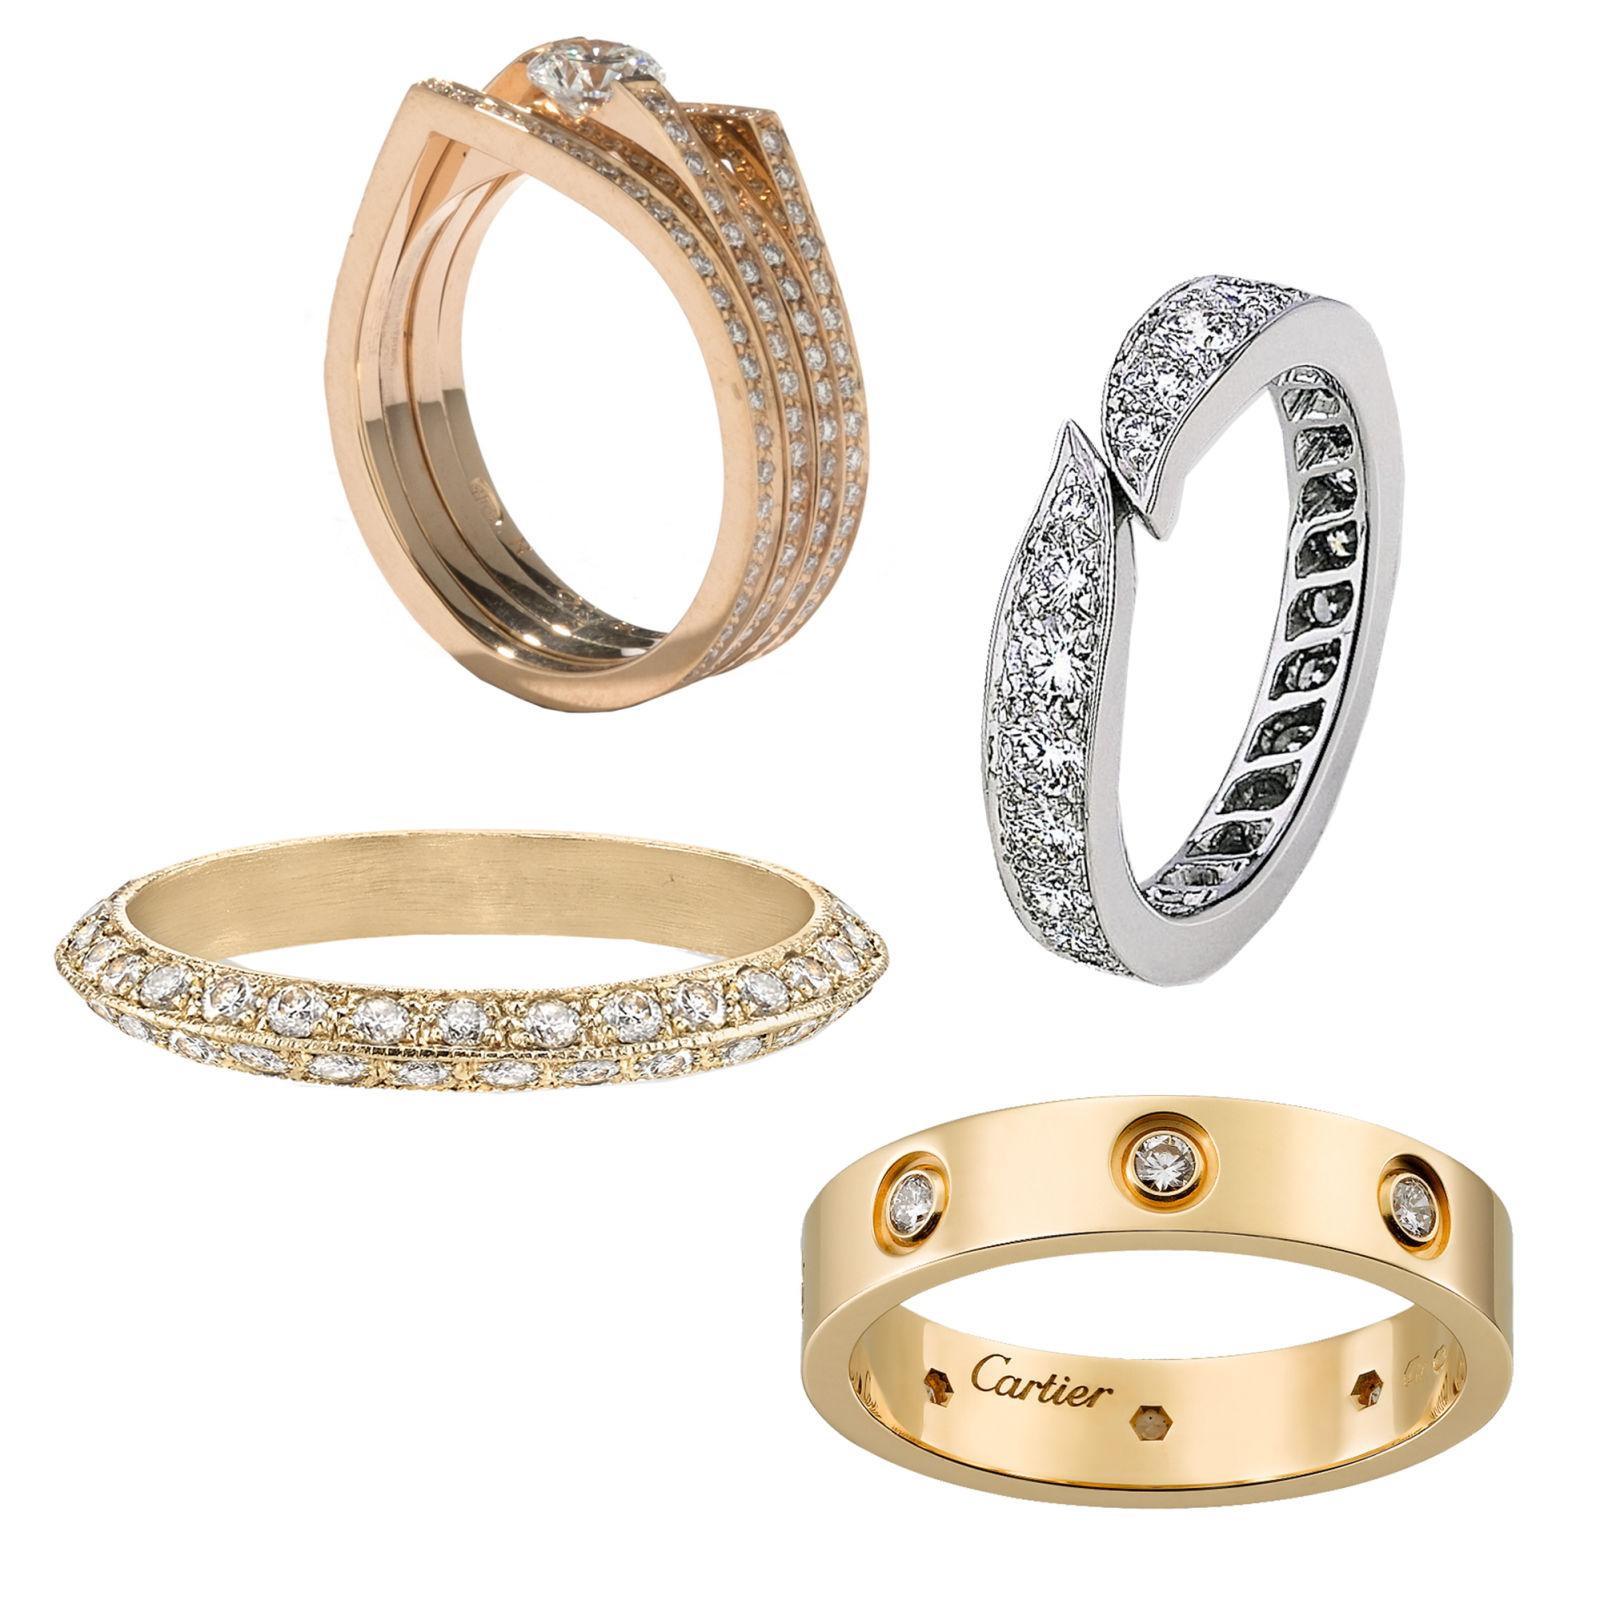 The Bling Ring: 7 Unexpected Engagement Ring Trends